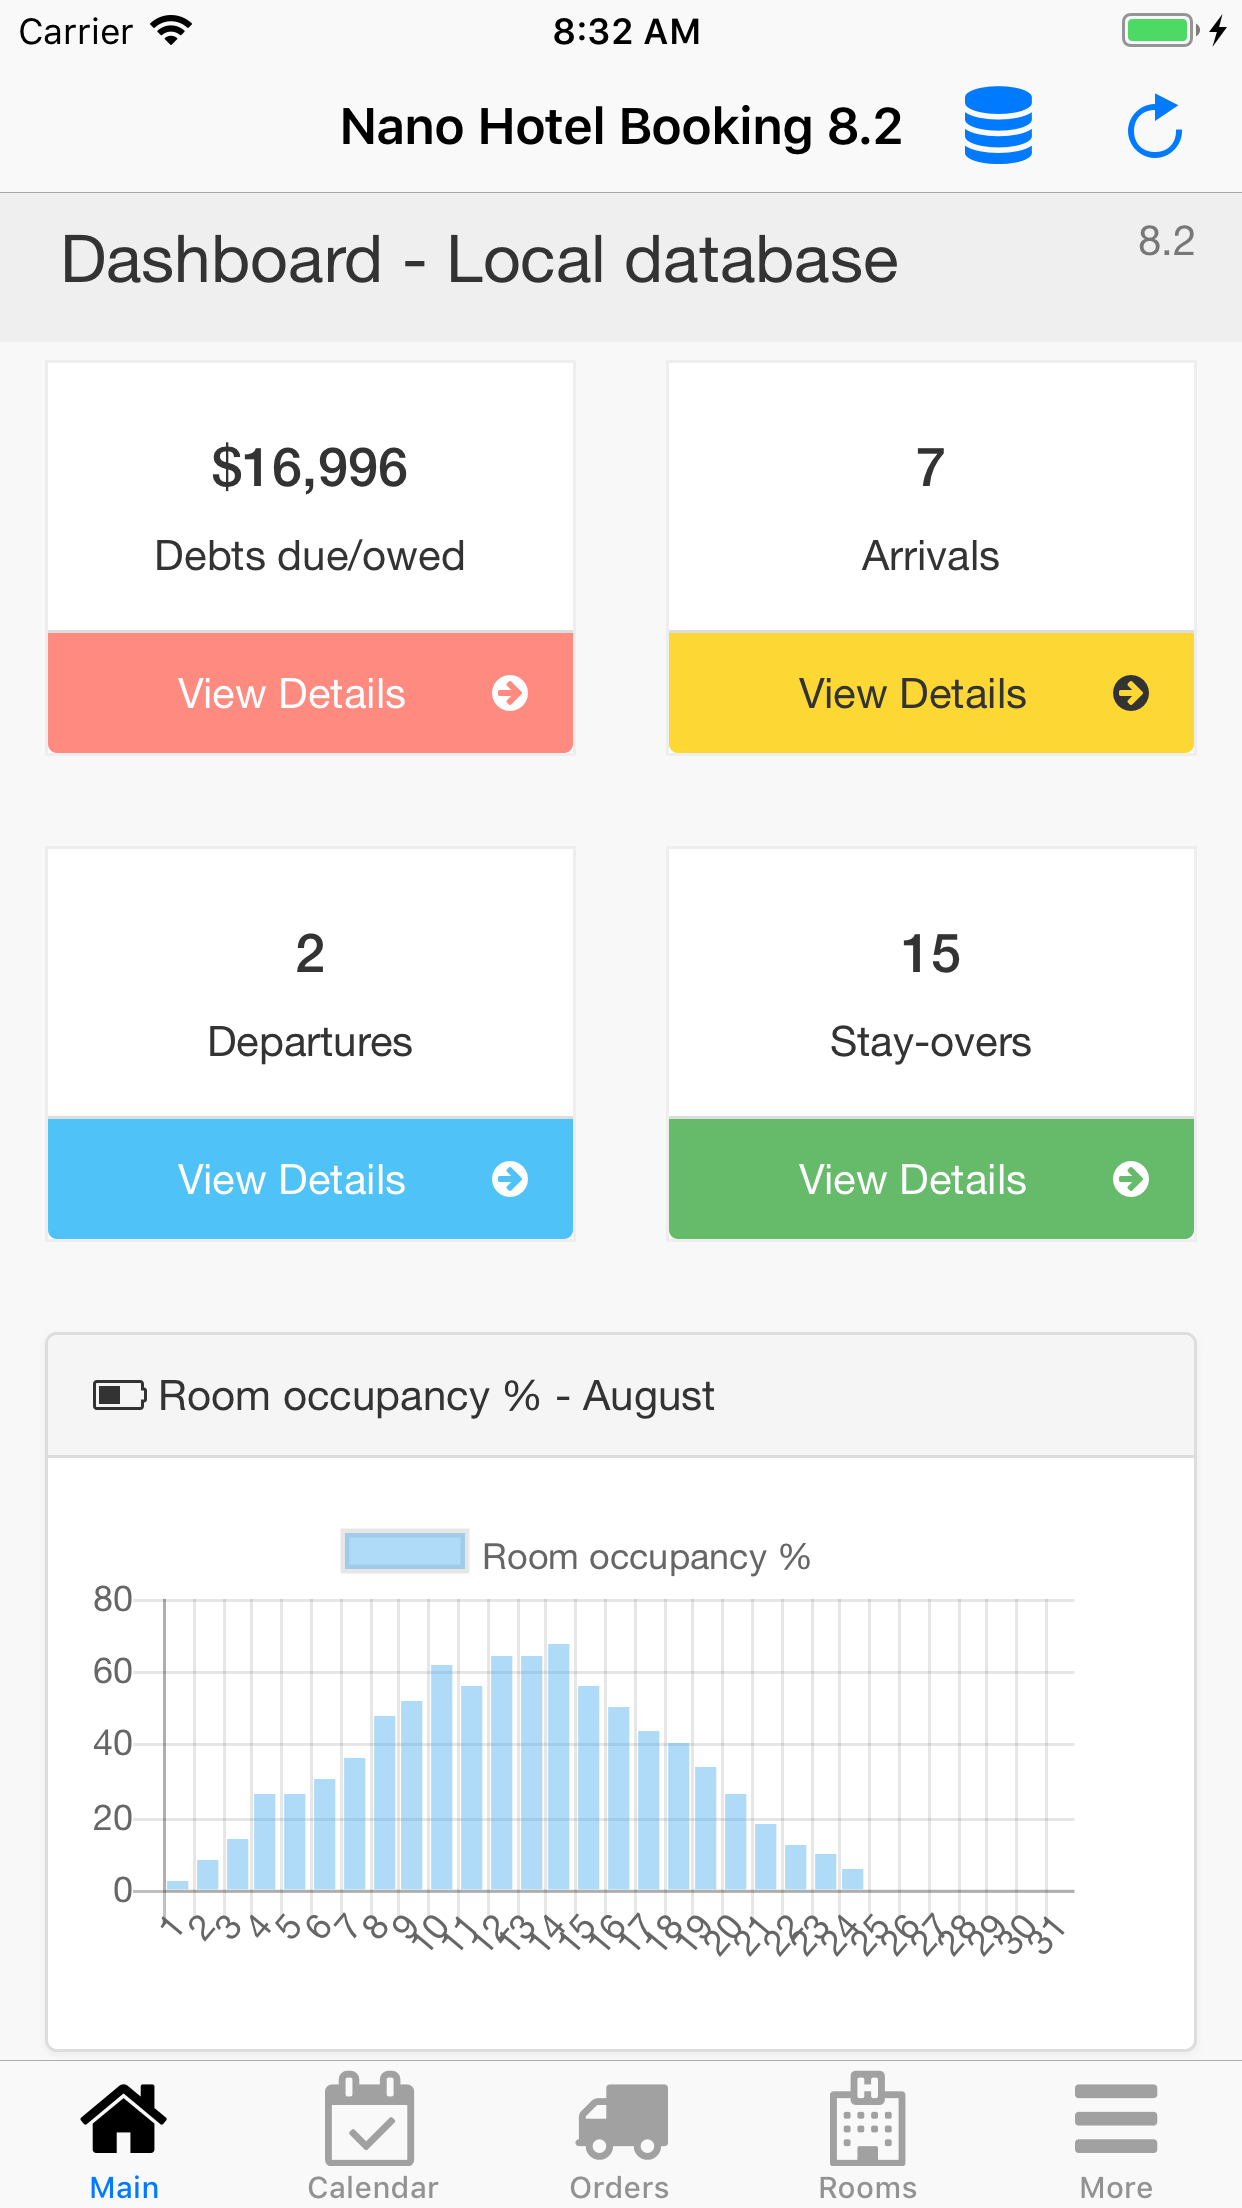 Nano Hotel Booking. Dashboard